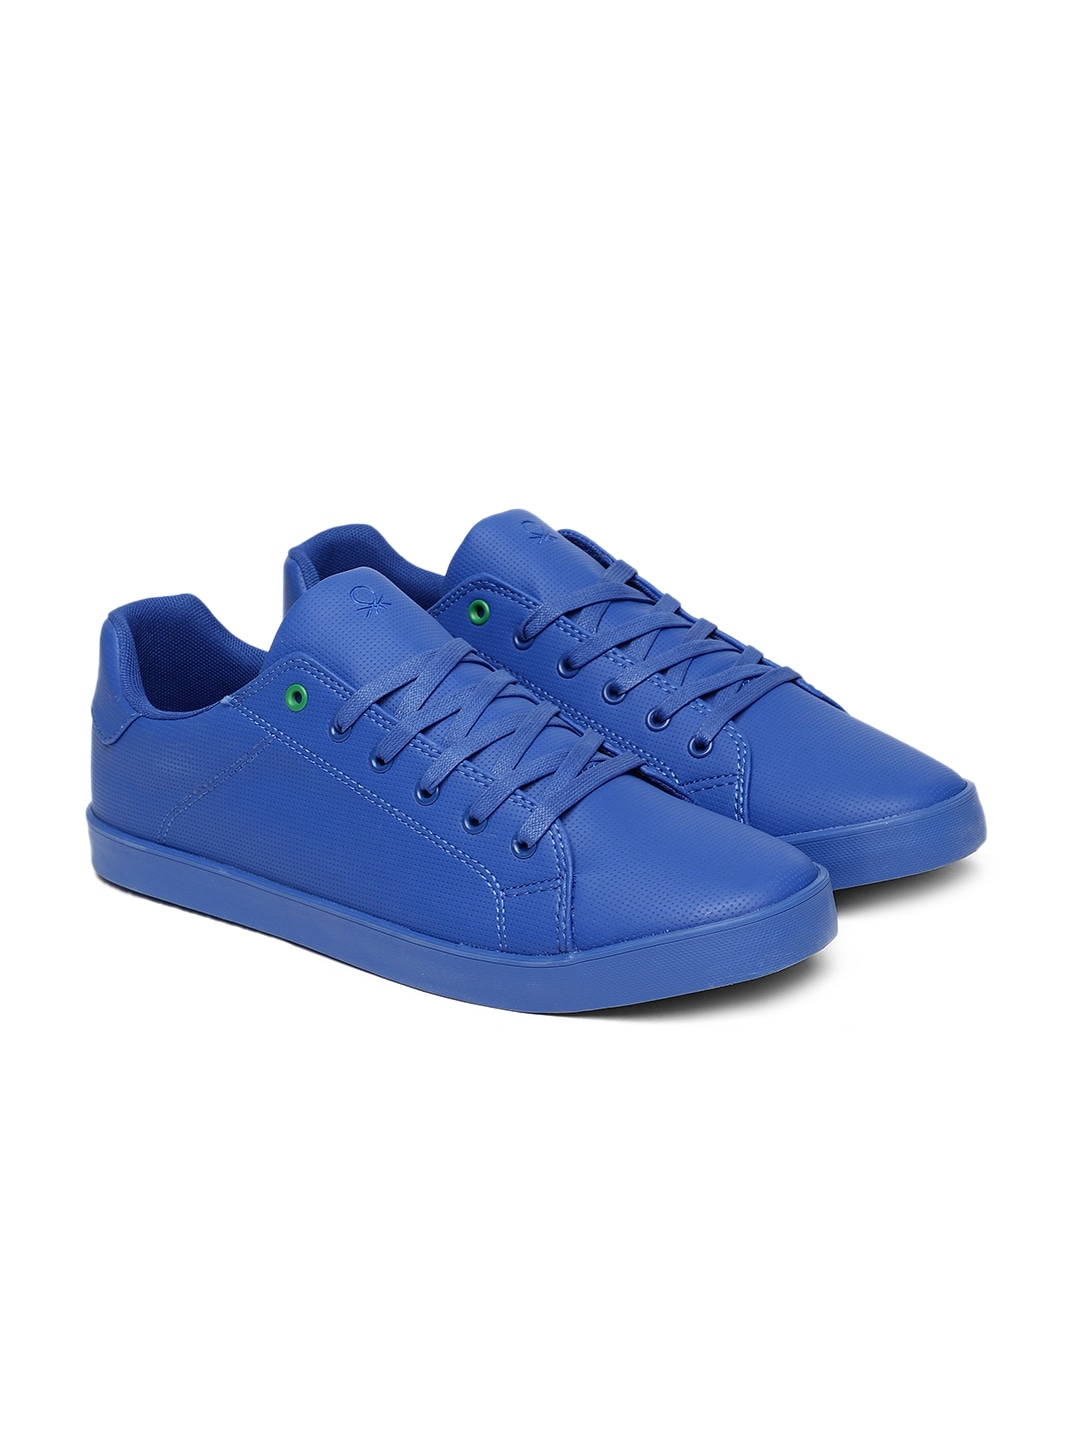 2cb2d94ae89e Casual Shoes For Men - Buy Casual   Flat Shoes For Men